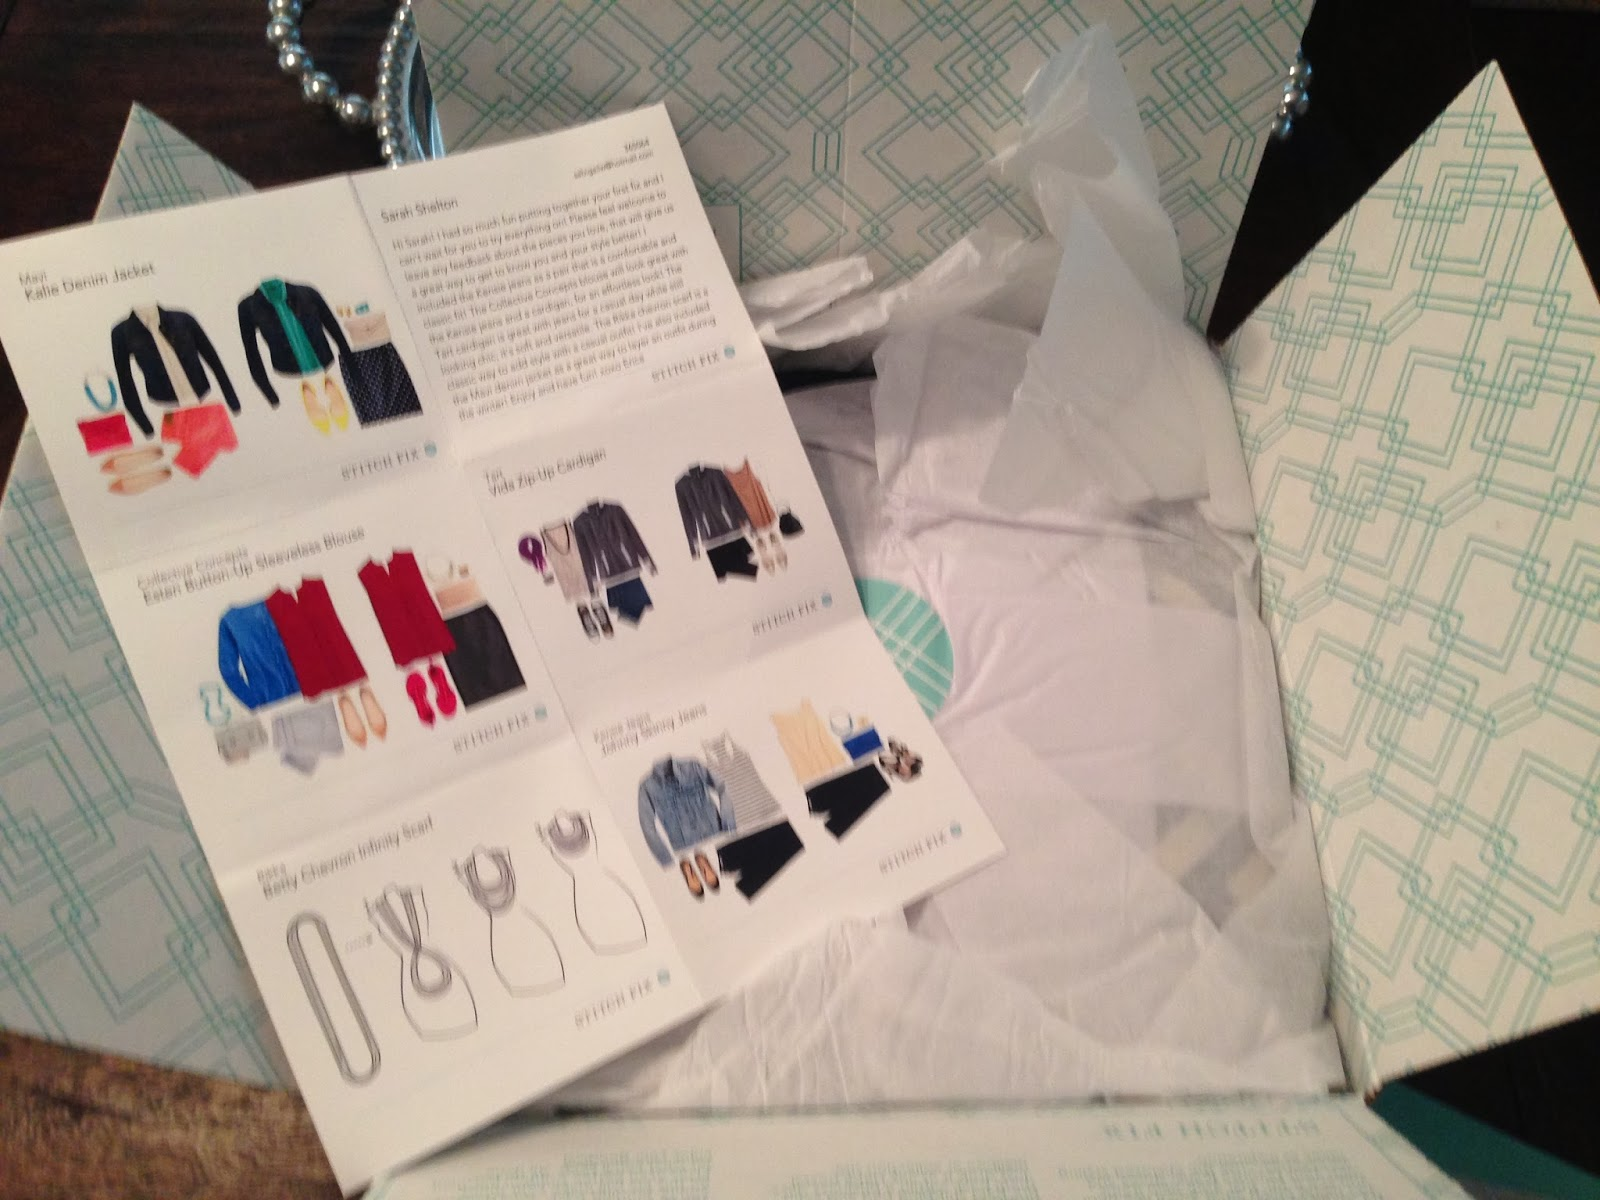 https://www.stitchfix.com/referral/3487757